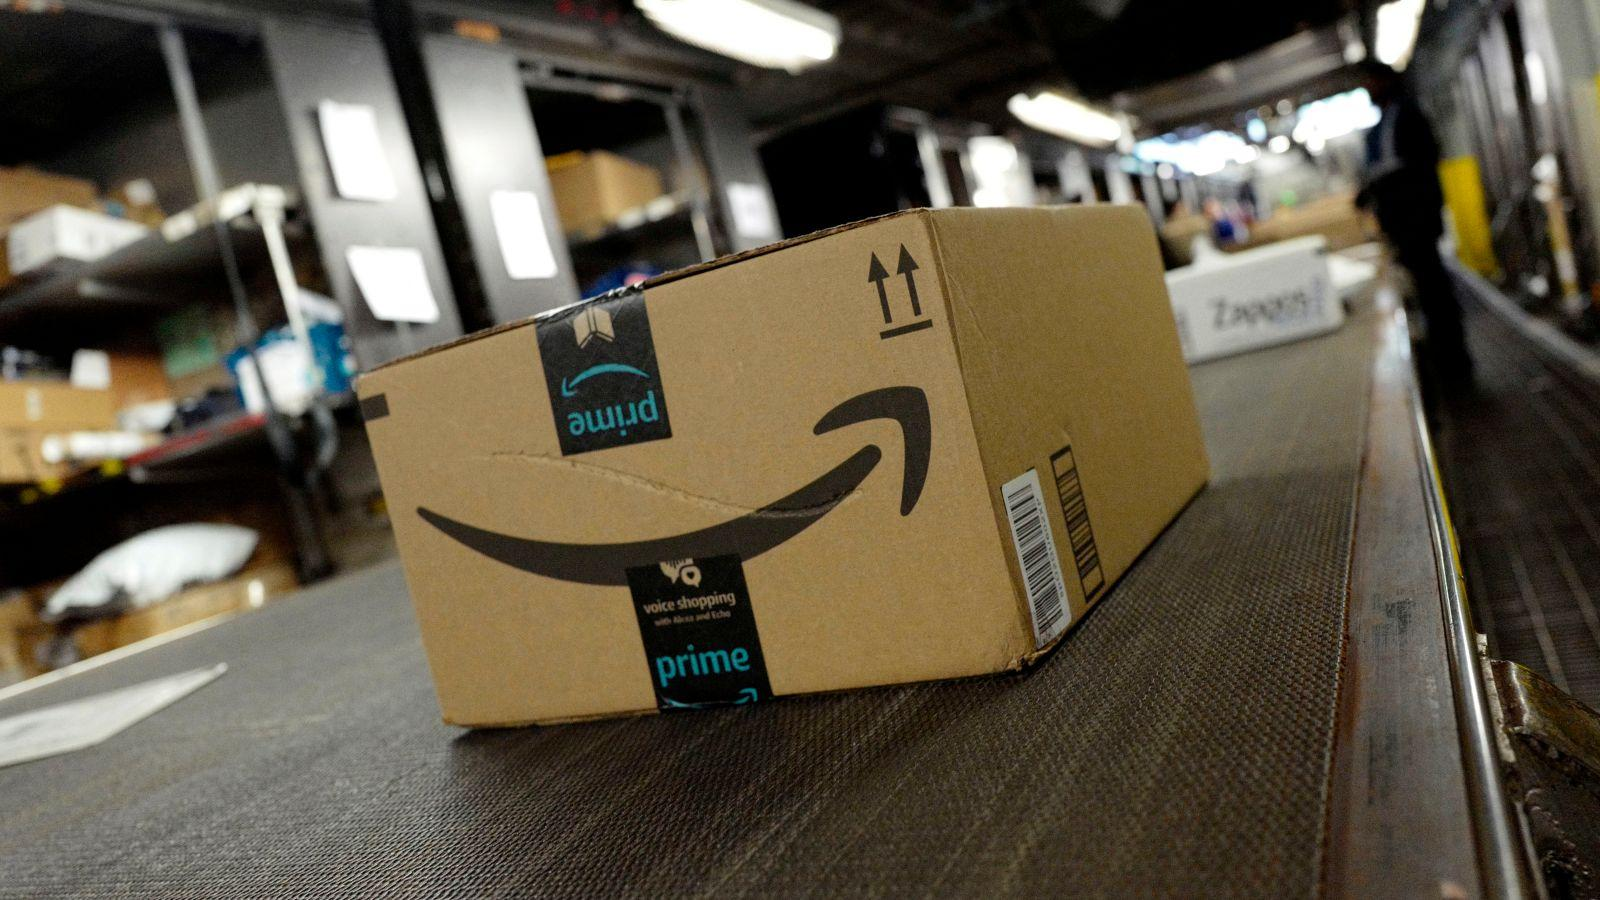 Amazon's Prime Day is off to a red hot start, despite glitches